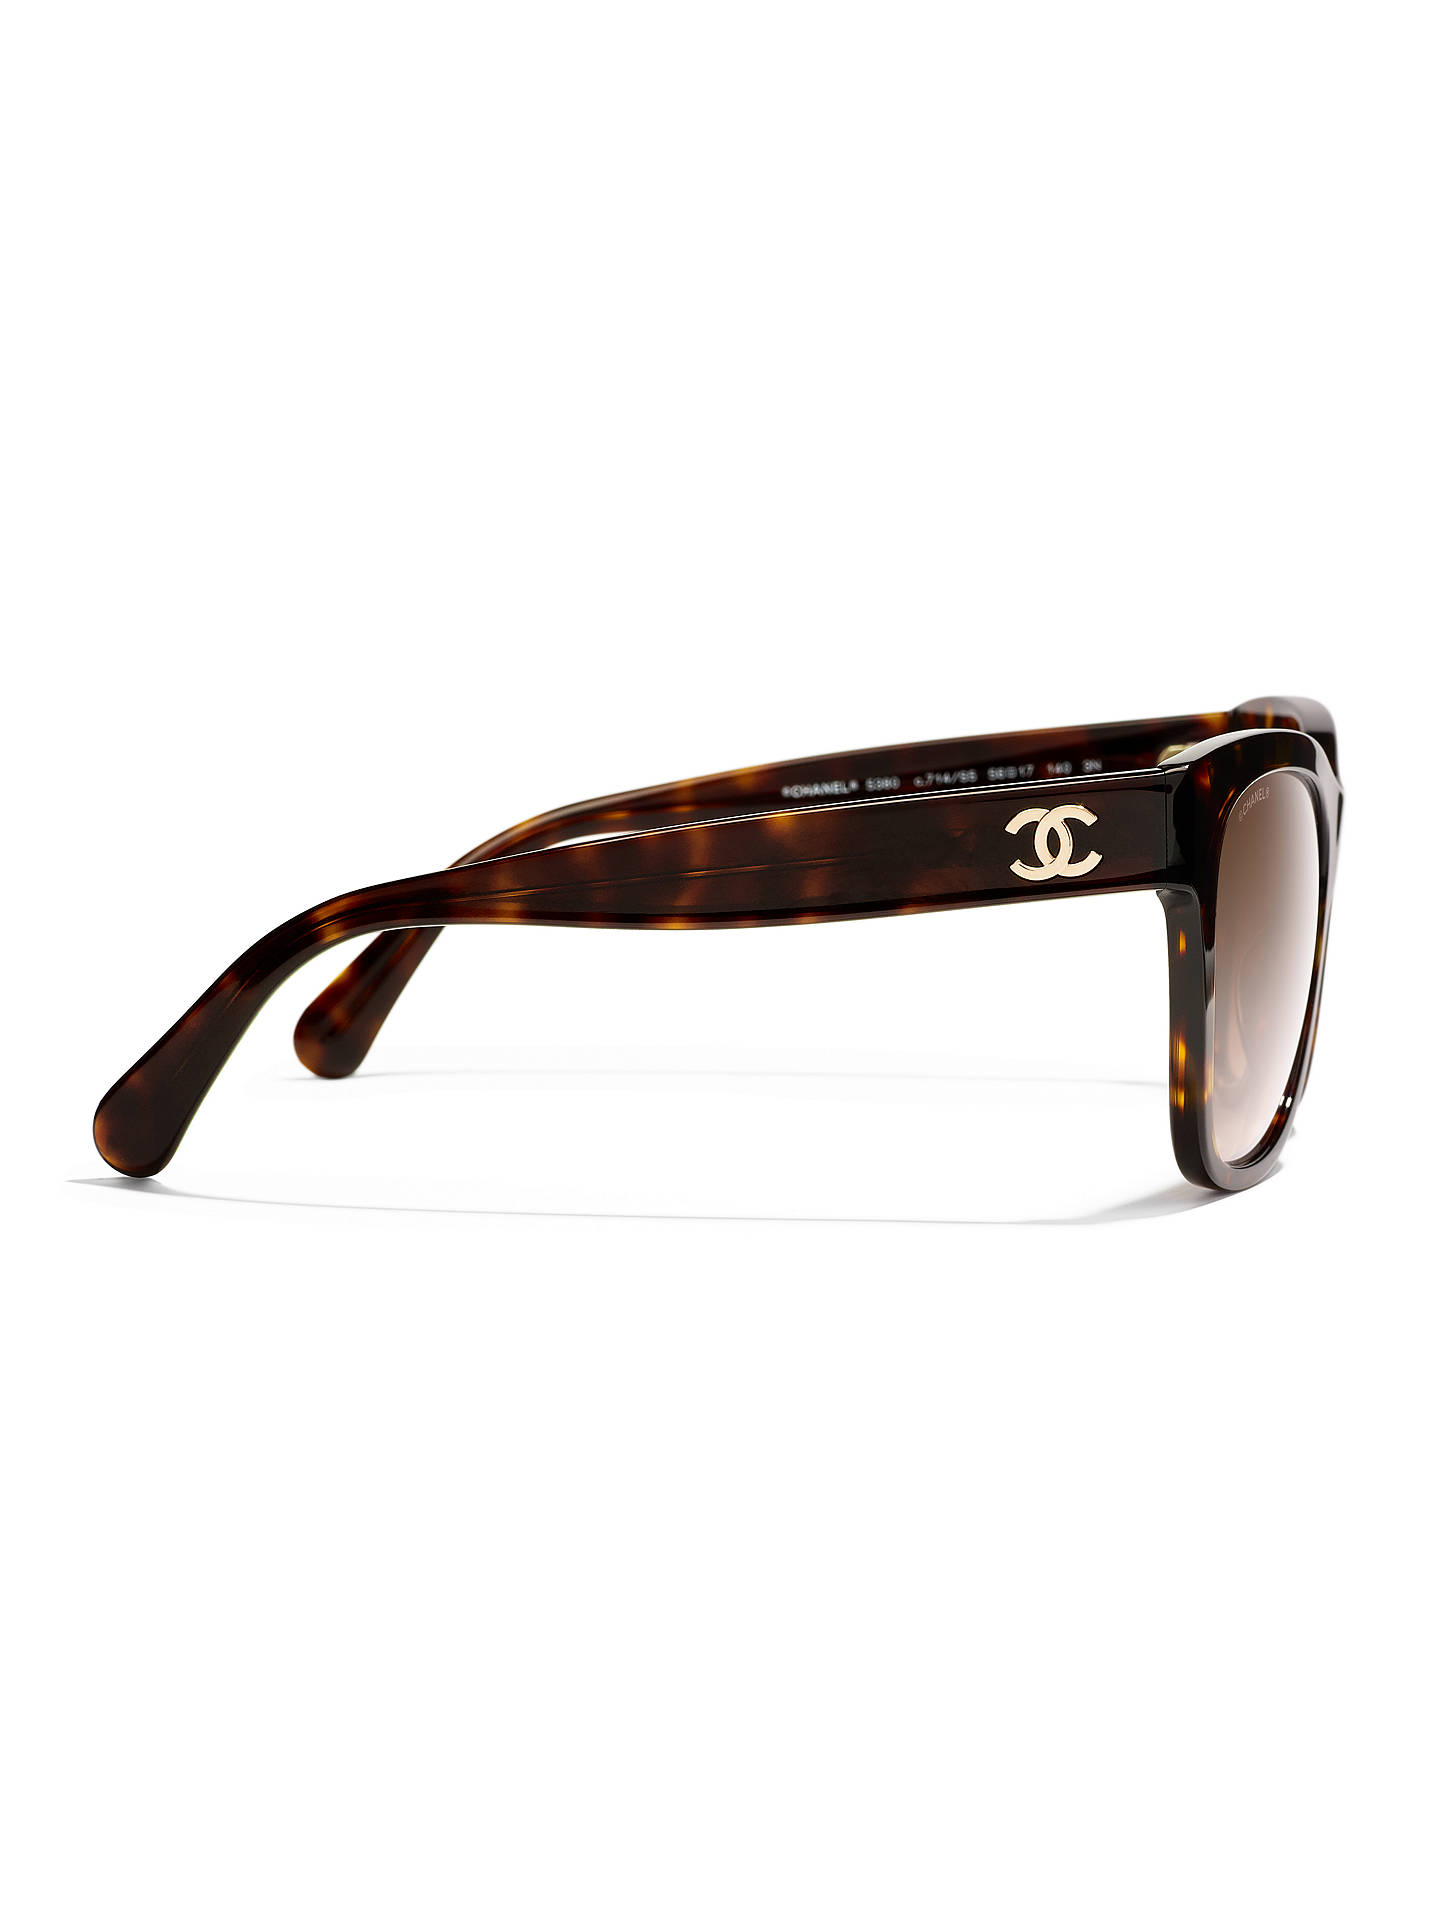 BuyCHANEL Square Sunglasses CH5380 Tortoise/Brown Gradient Online at johnlewis.com